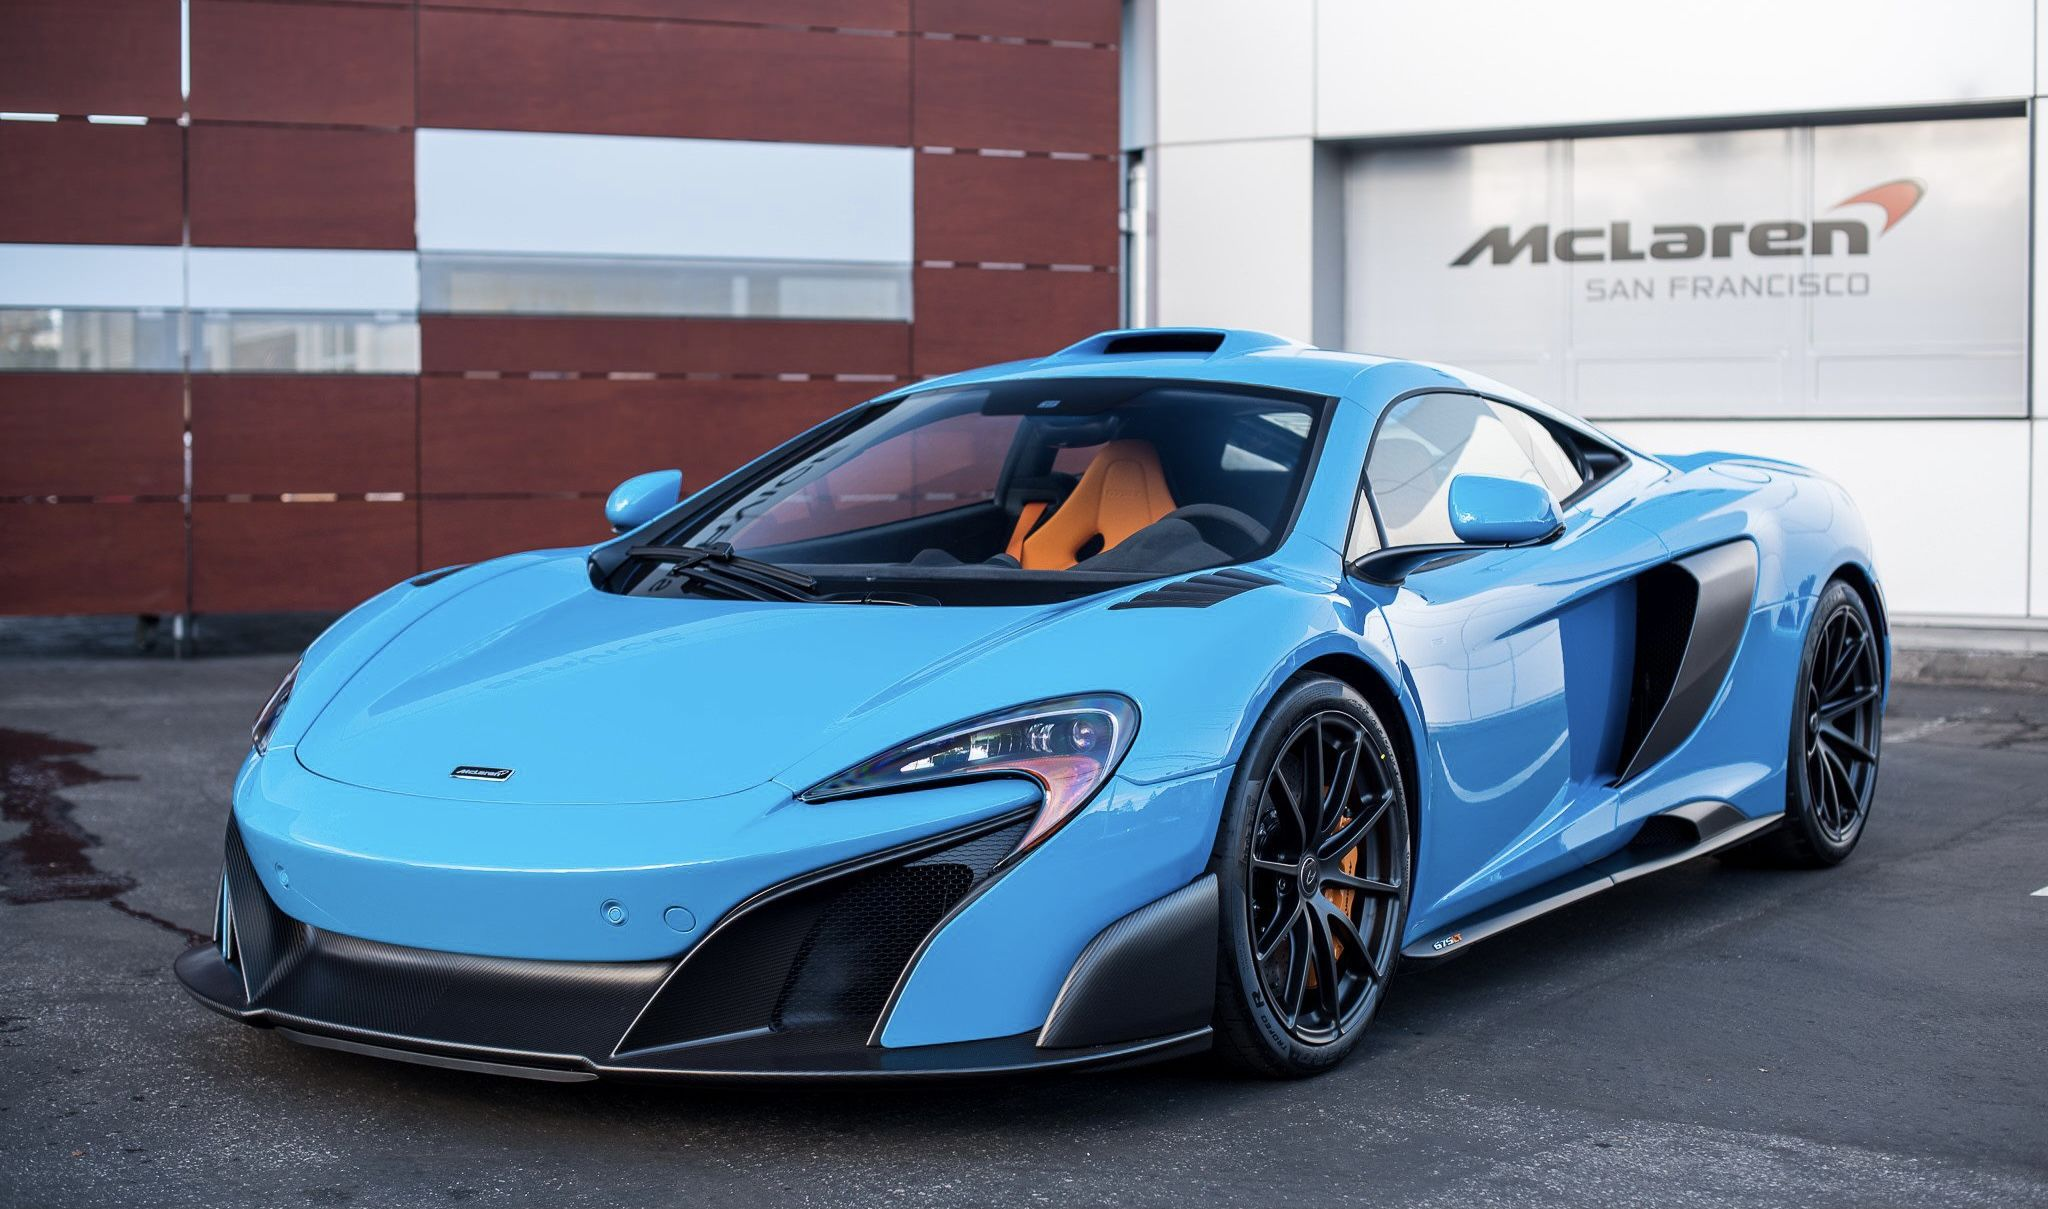 Pin By Jack Lee On Hypercars In 2021 Mclaren 675lt Wallpaper Pictures Blue Wallpapers